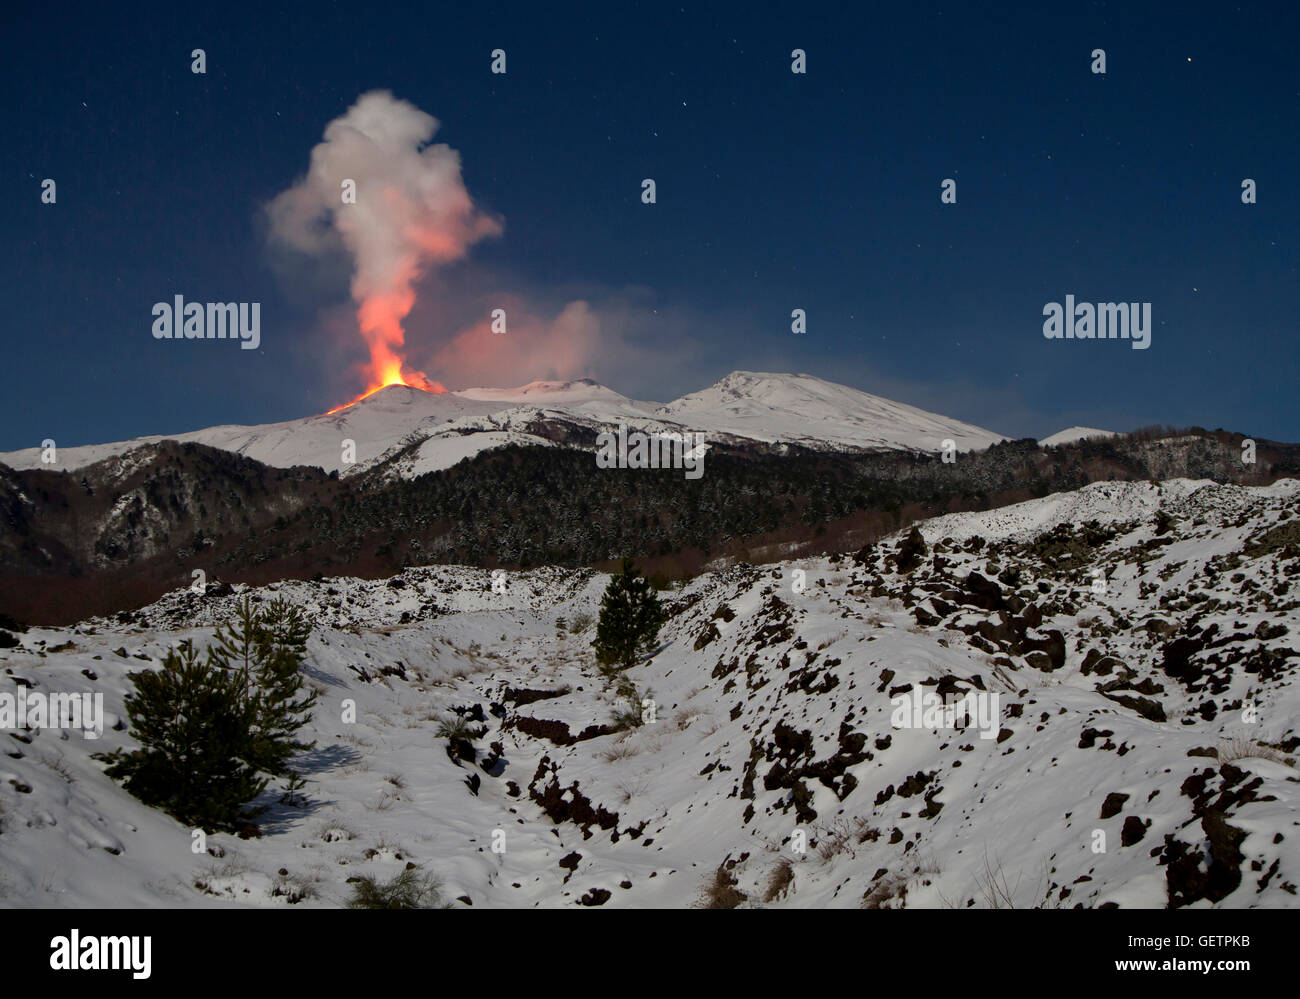 eruption of mount etna on the night of 8 9 february 2012 viewed from